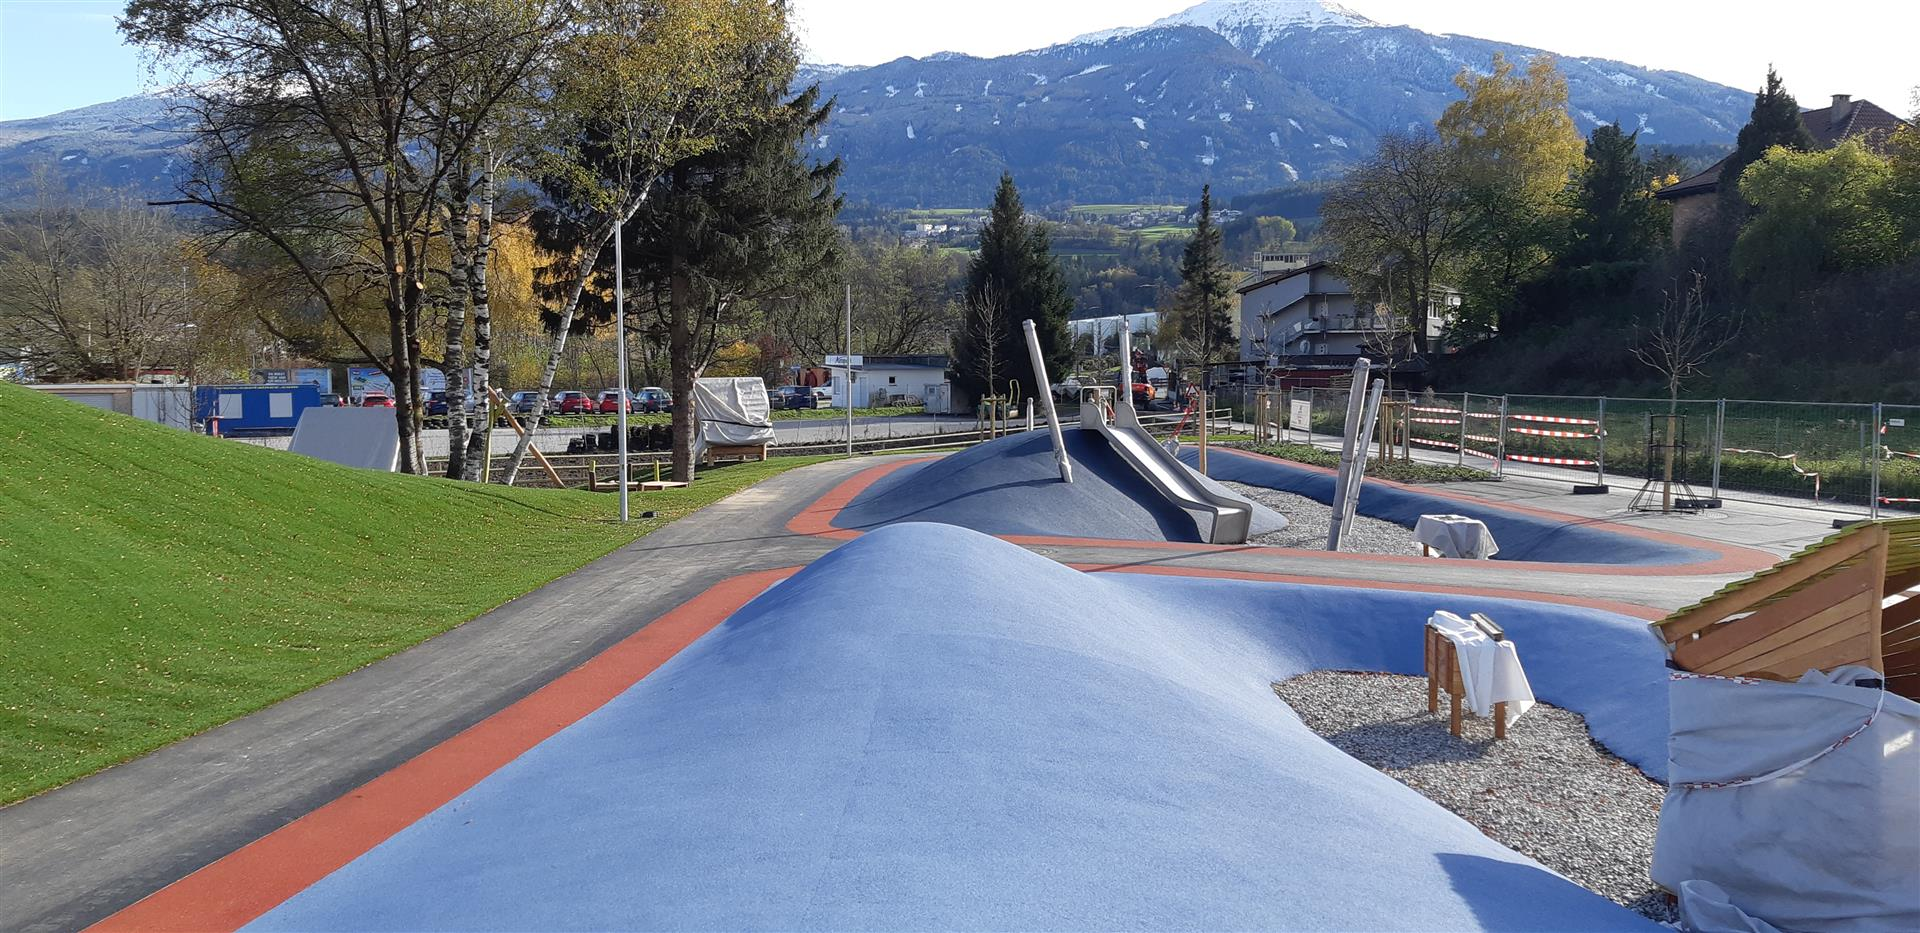 Freizeitpark, Innsbruck - Civil engineering